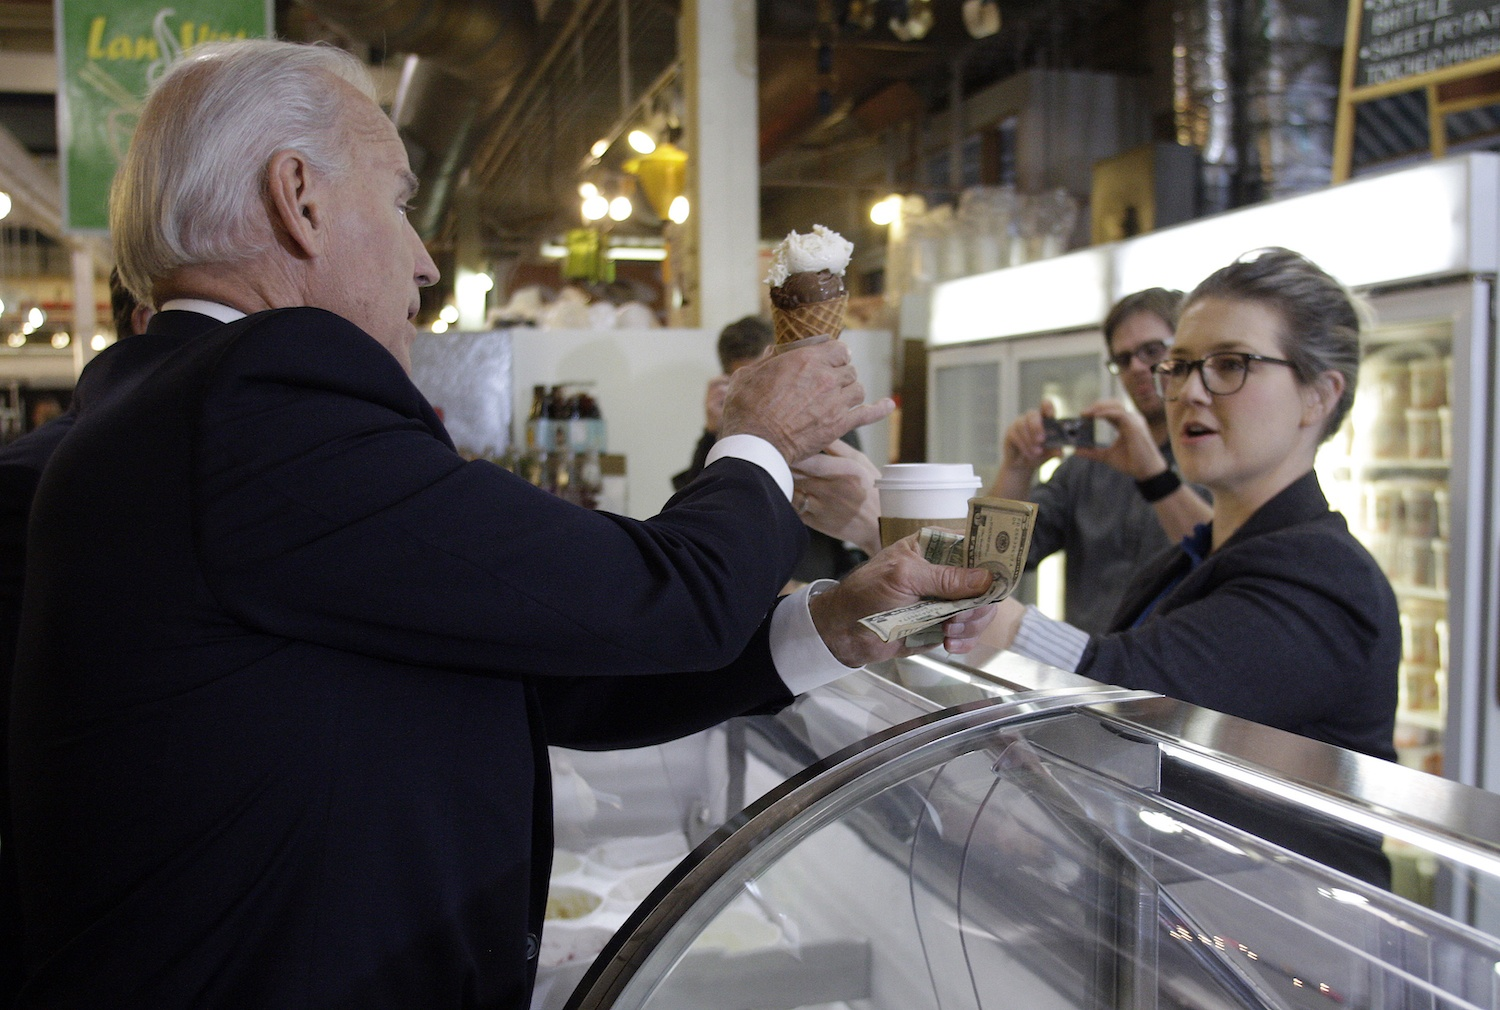 Joe Biden, left, buys a double scoop ice cream cone from Jeni's Ice Cream owner Jeni Britton Bauer at North Market in downtown Columbus, Ohio during the 2012 campaign.